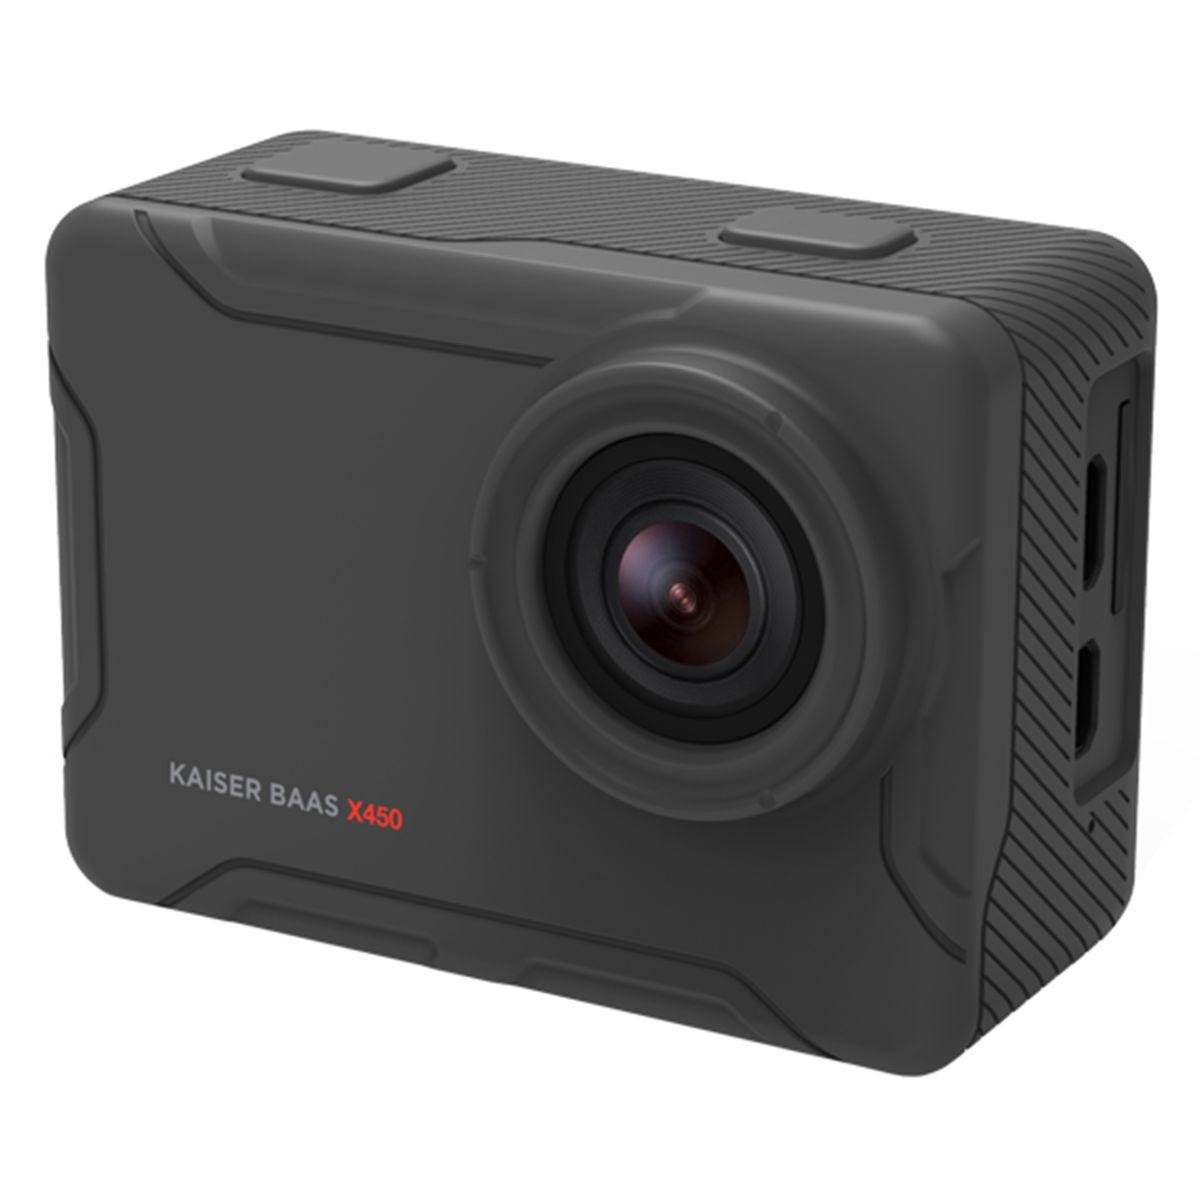 Kaiser Baas X450 4K Action Camera - 30FPS 14MP